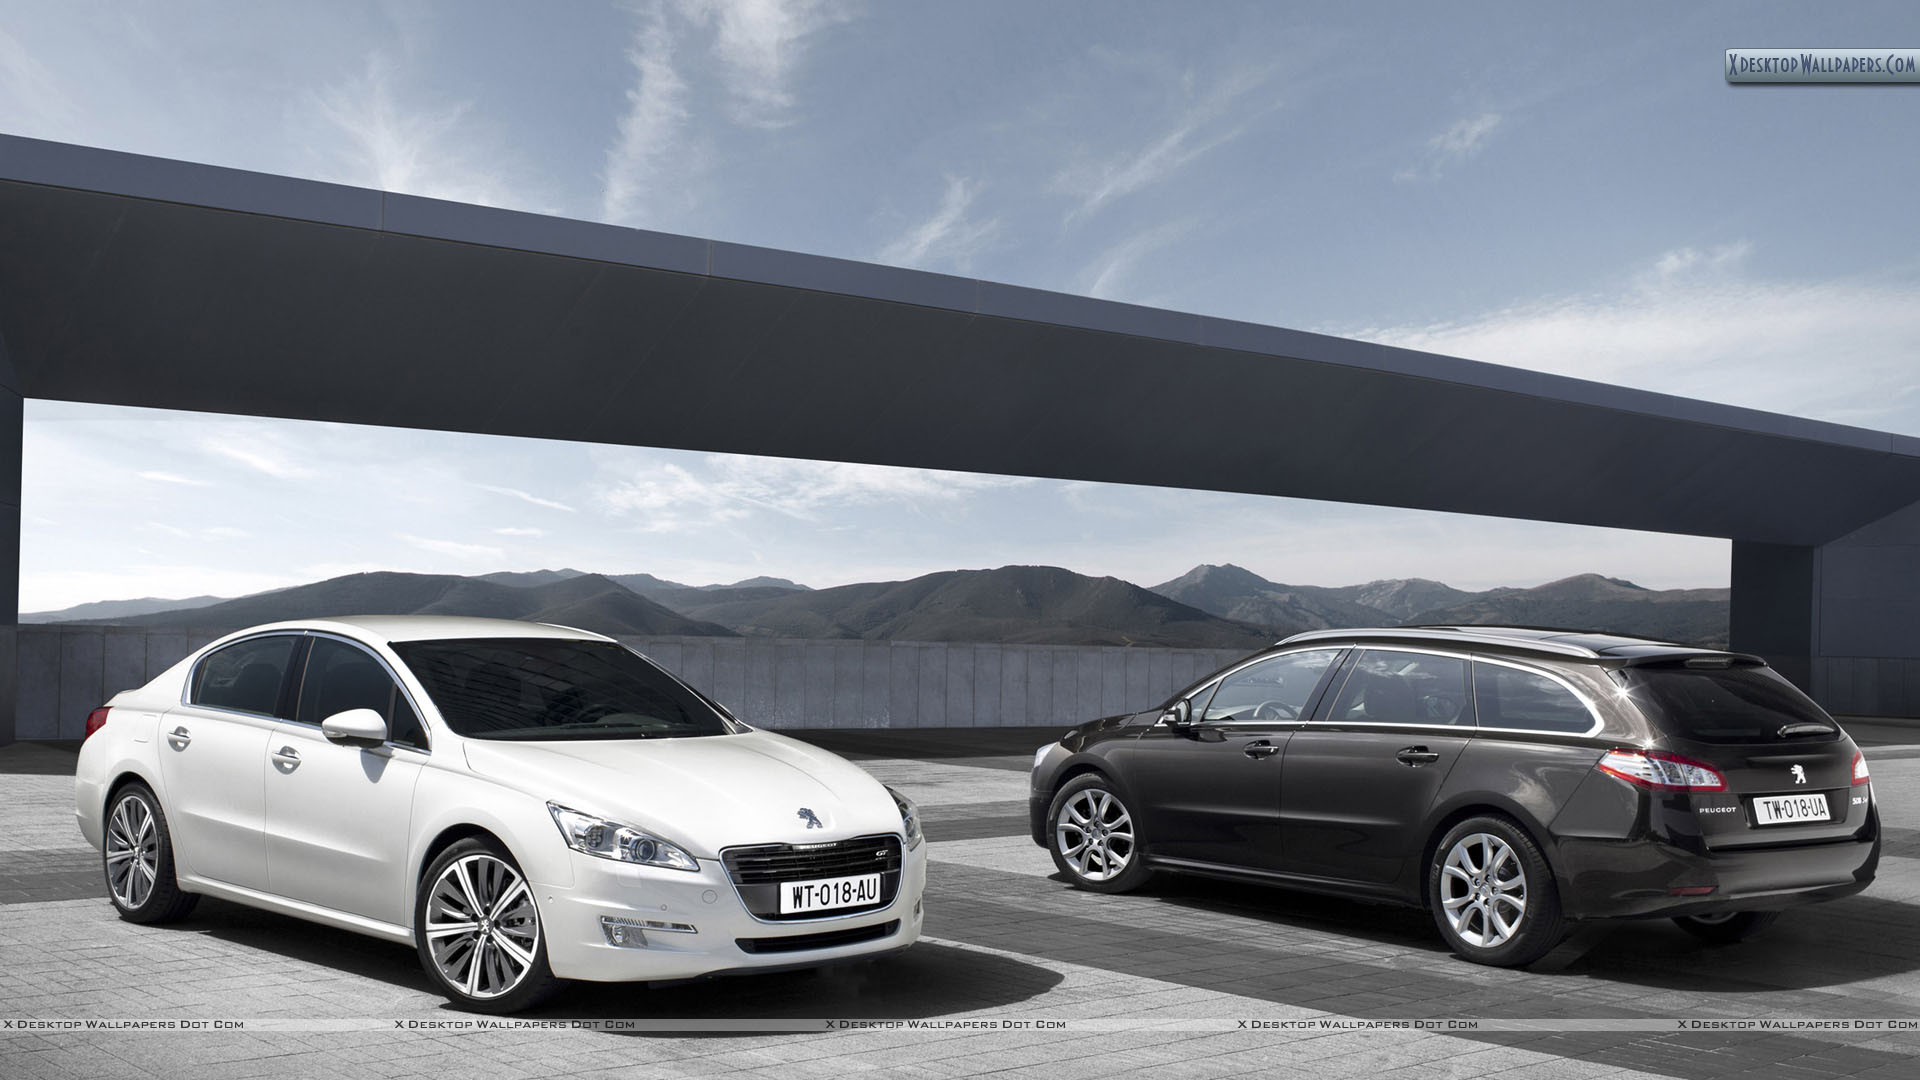 Peugeot 508 Wallpapers Photos Images in HD 1920x1080